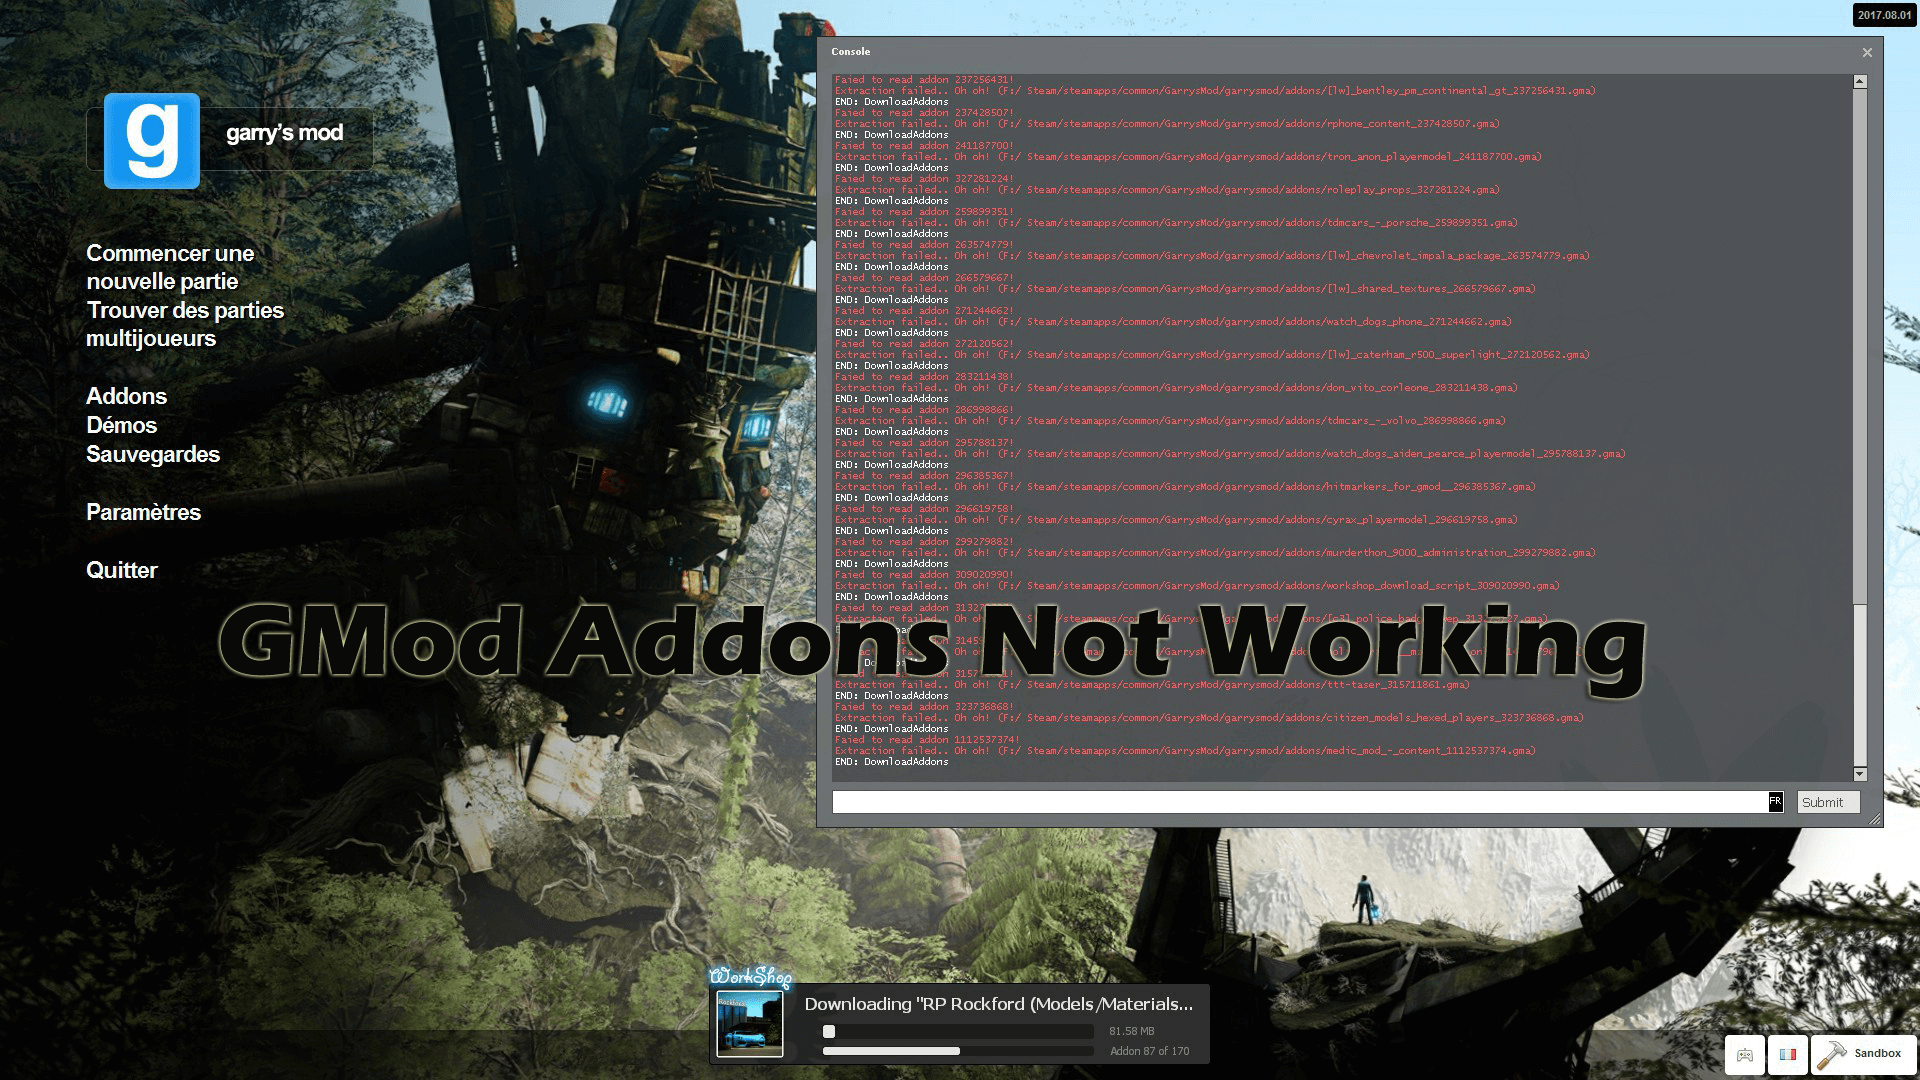 GMod addons not working